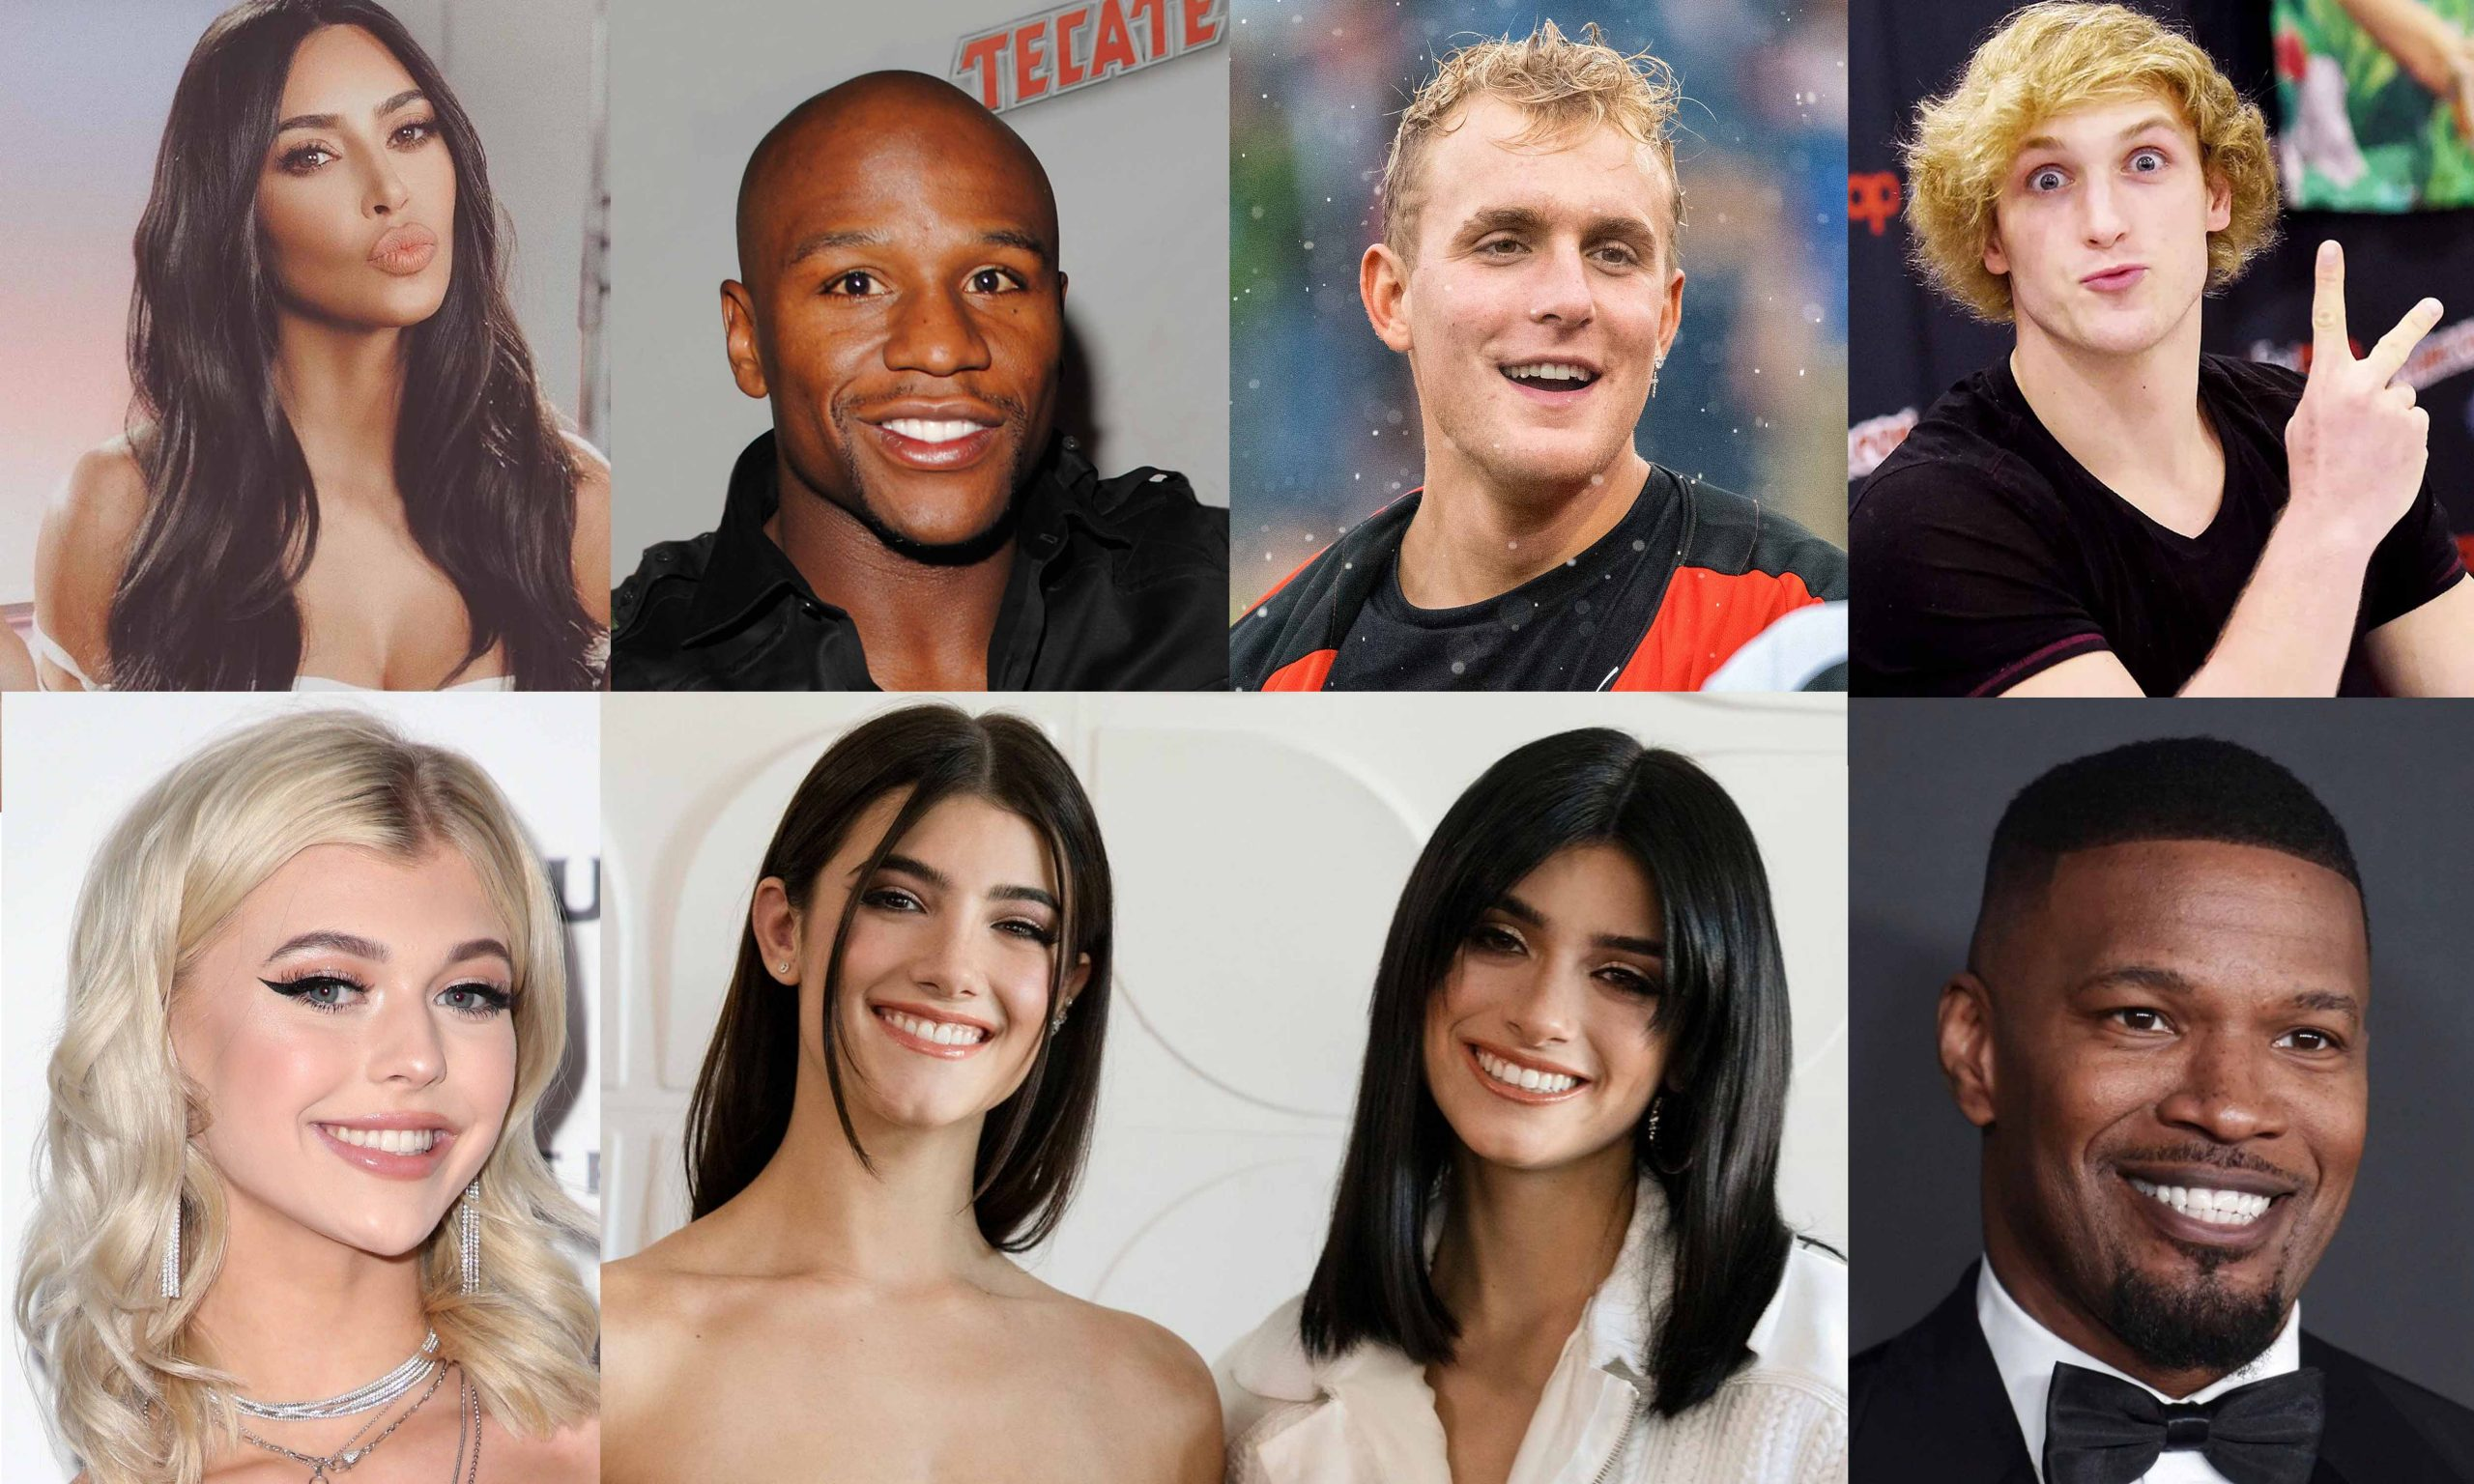 Celebrities and Influencers: Are they bragging or promoting cryptocurrencies on social media?